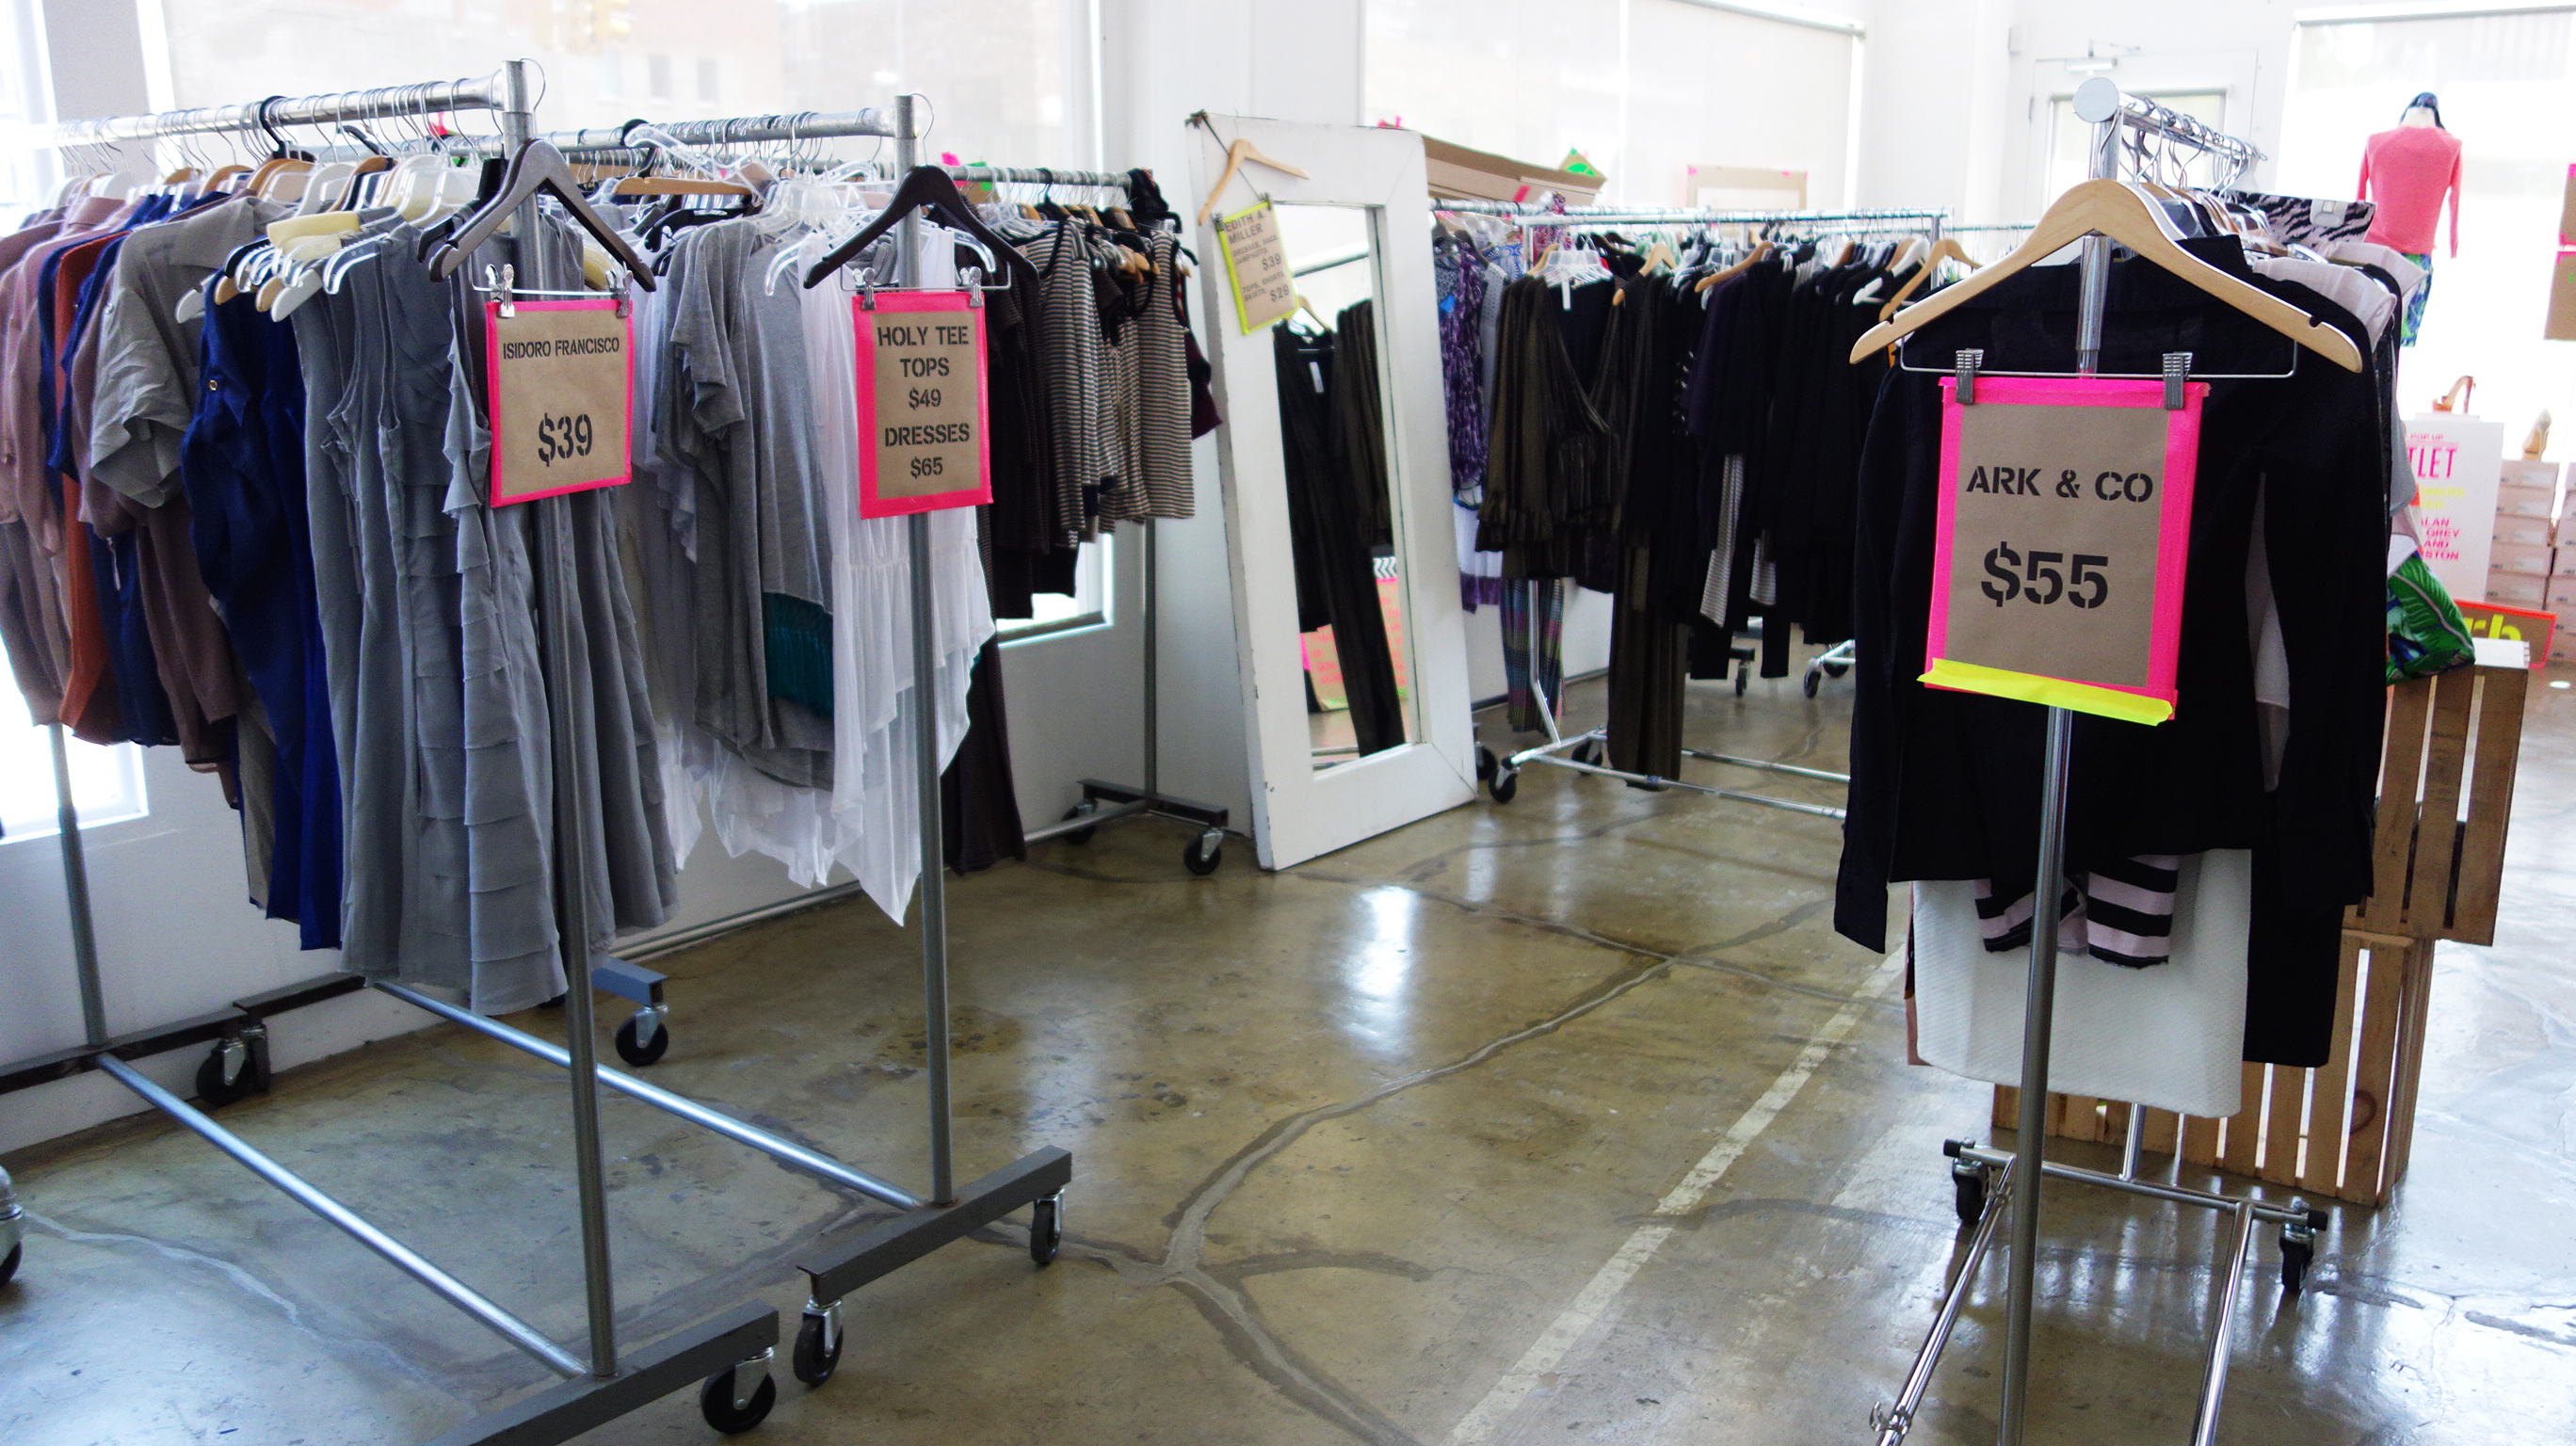 A pop-up sale in the Bowery neighborhood of New York City.